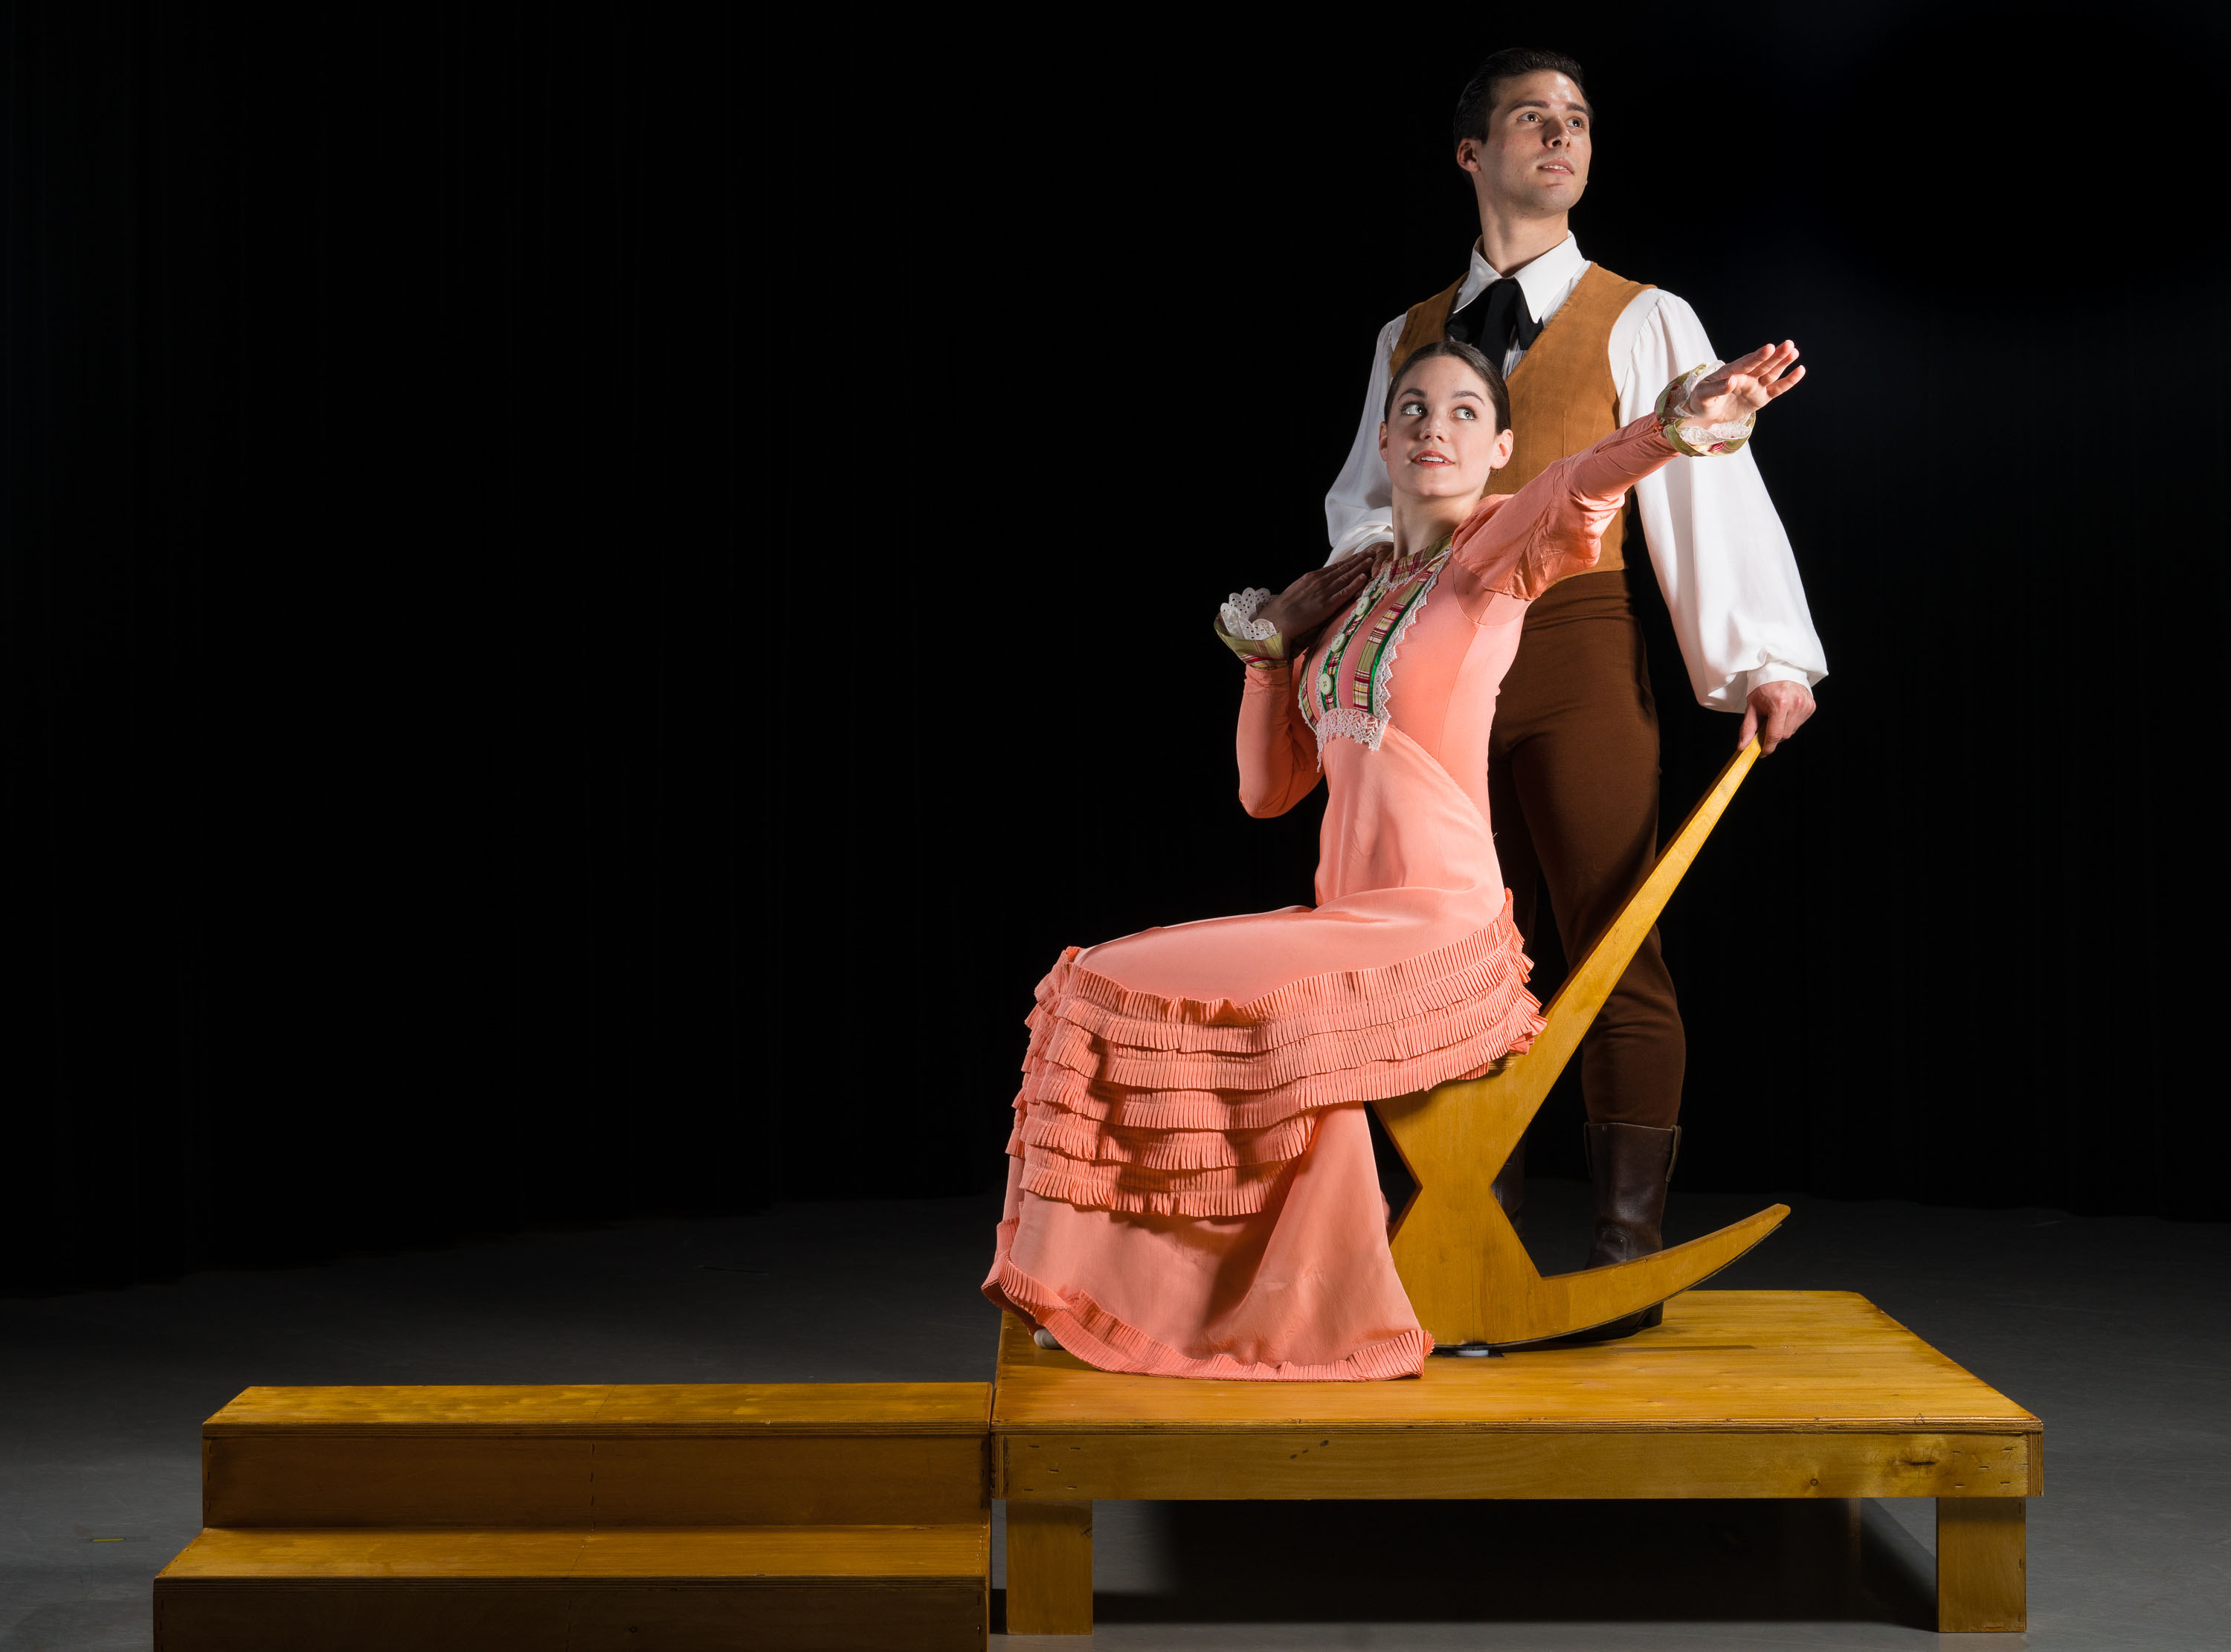 Appalachian Spring by Martha Graham performed by the SMU Meadows Dance Ensemble